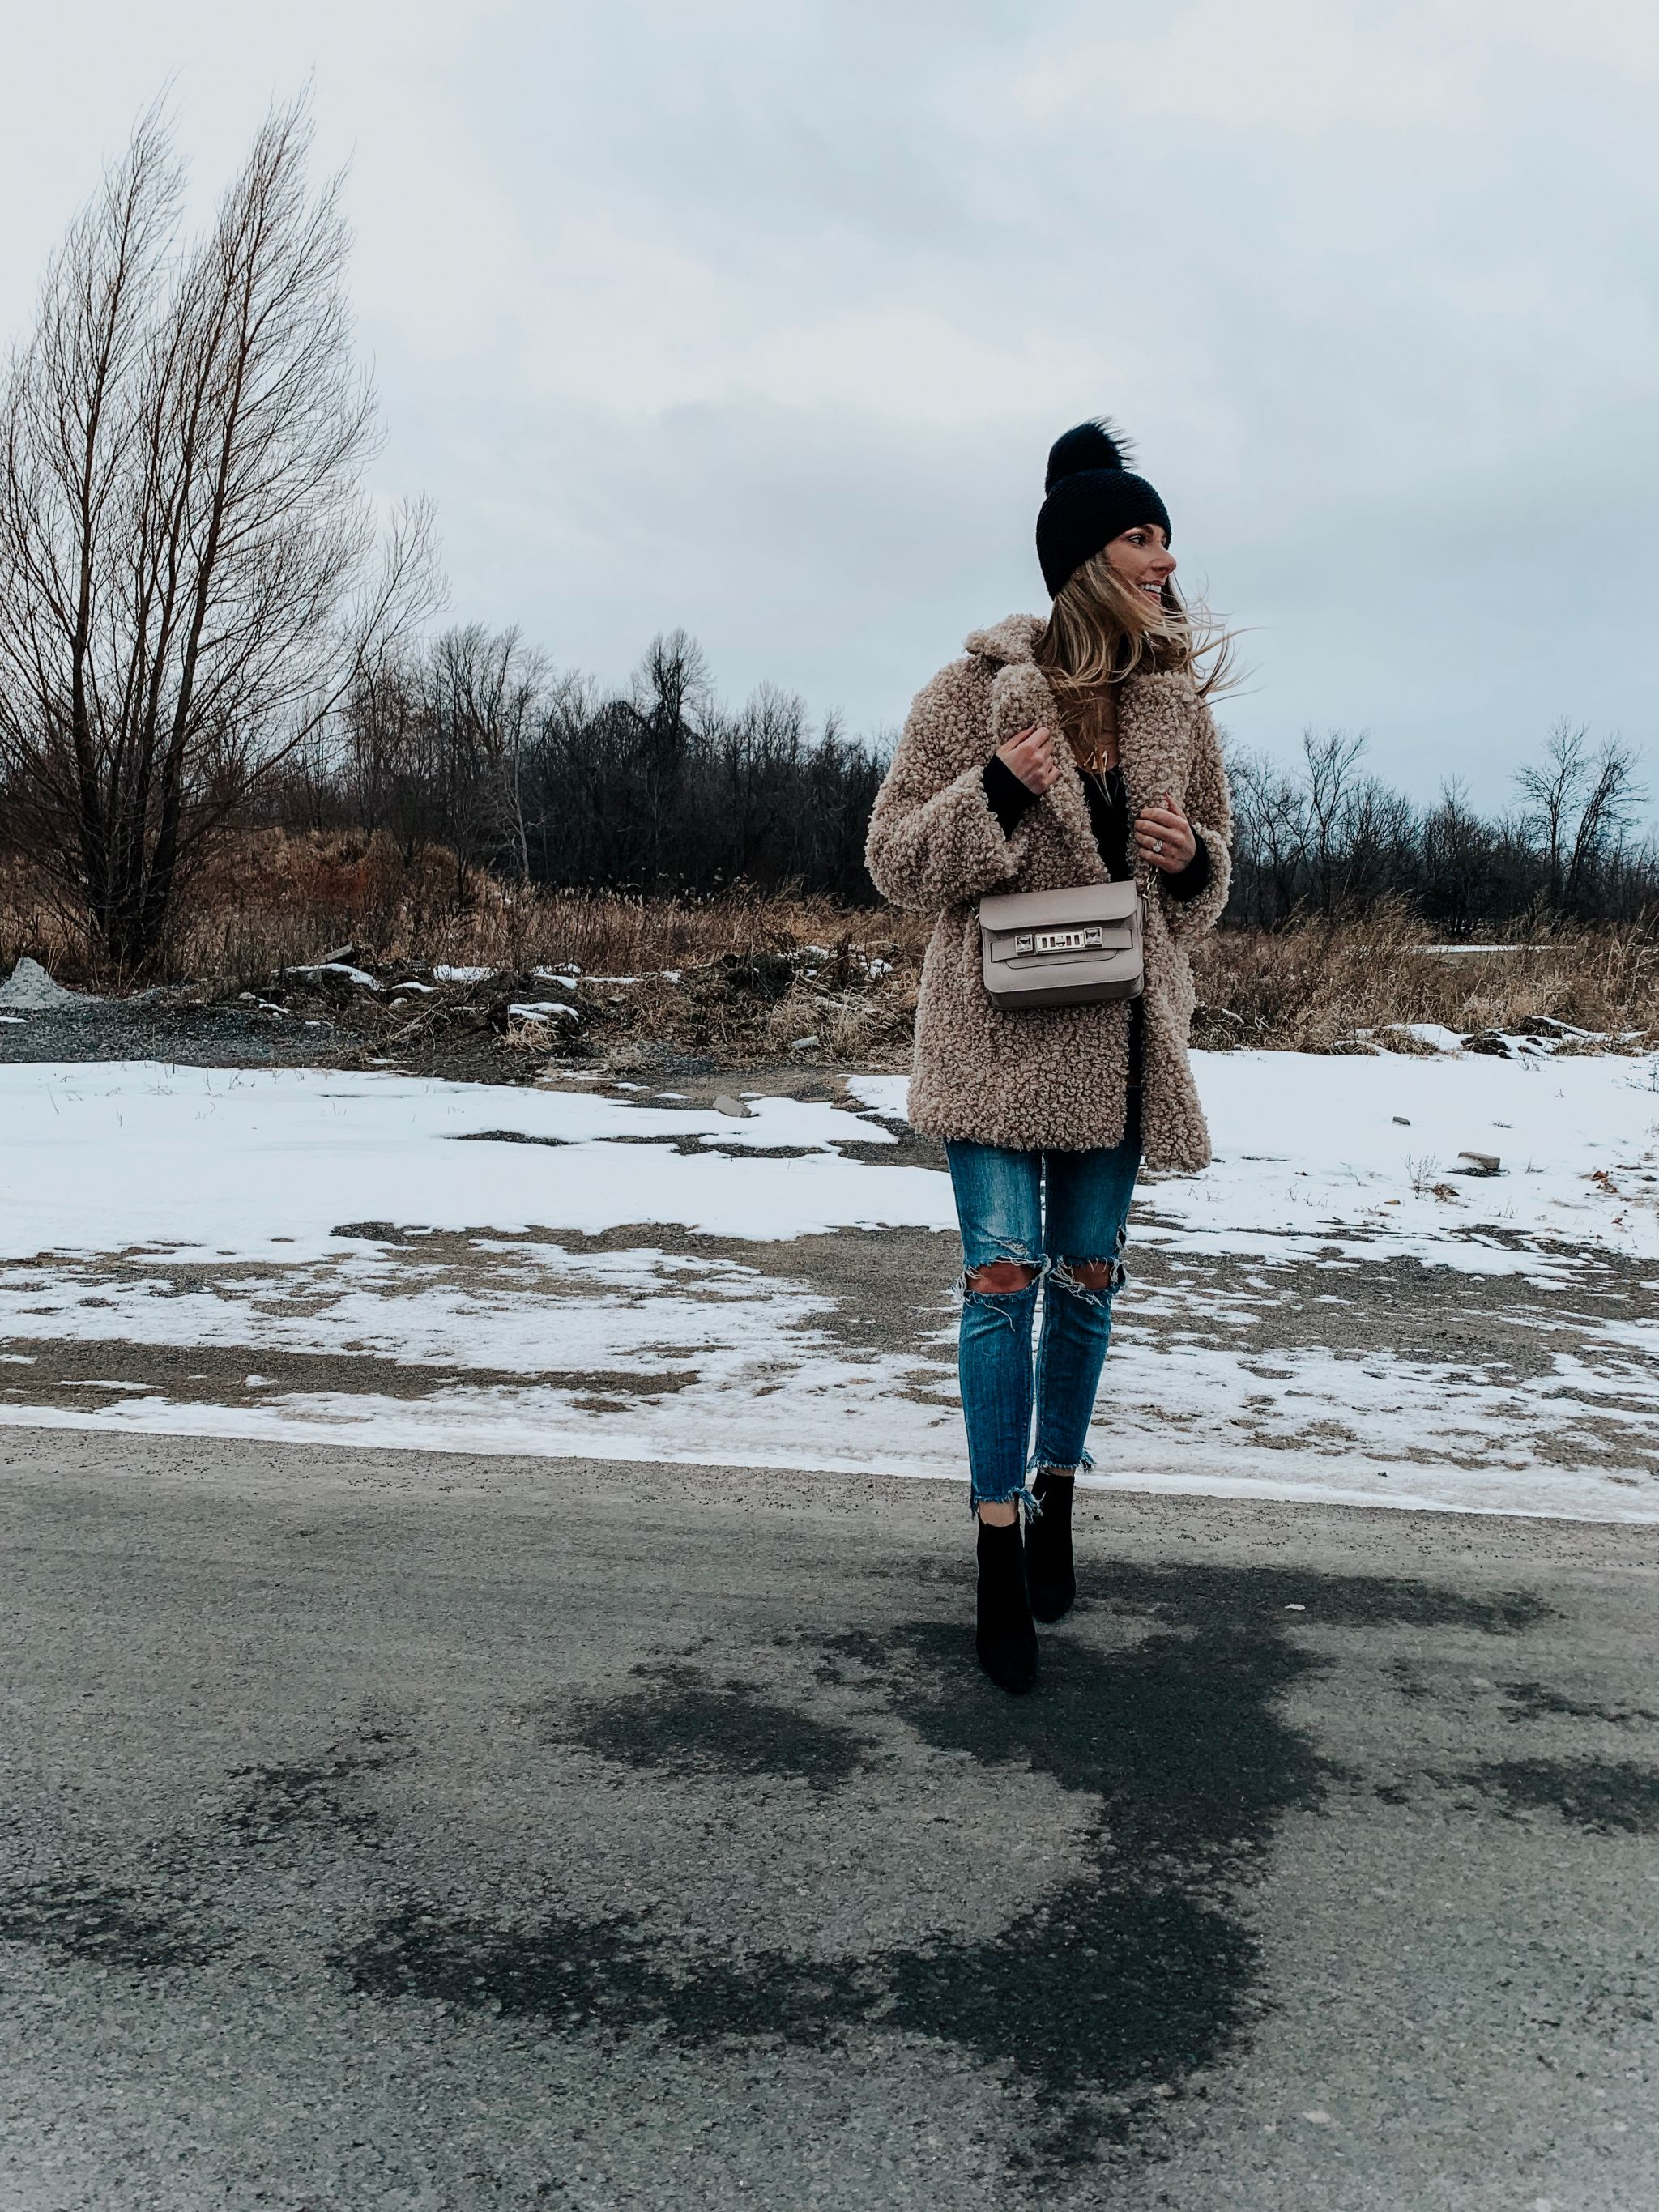 1 girl wearing fur jacket and jeans, cute winter outfit idea